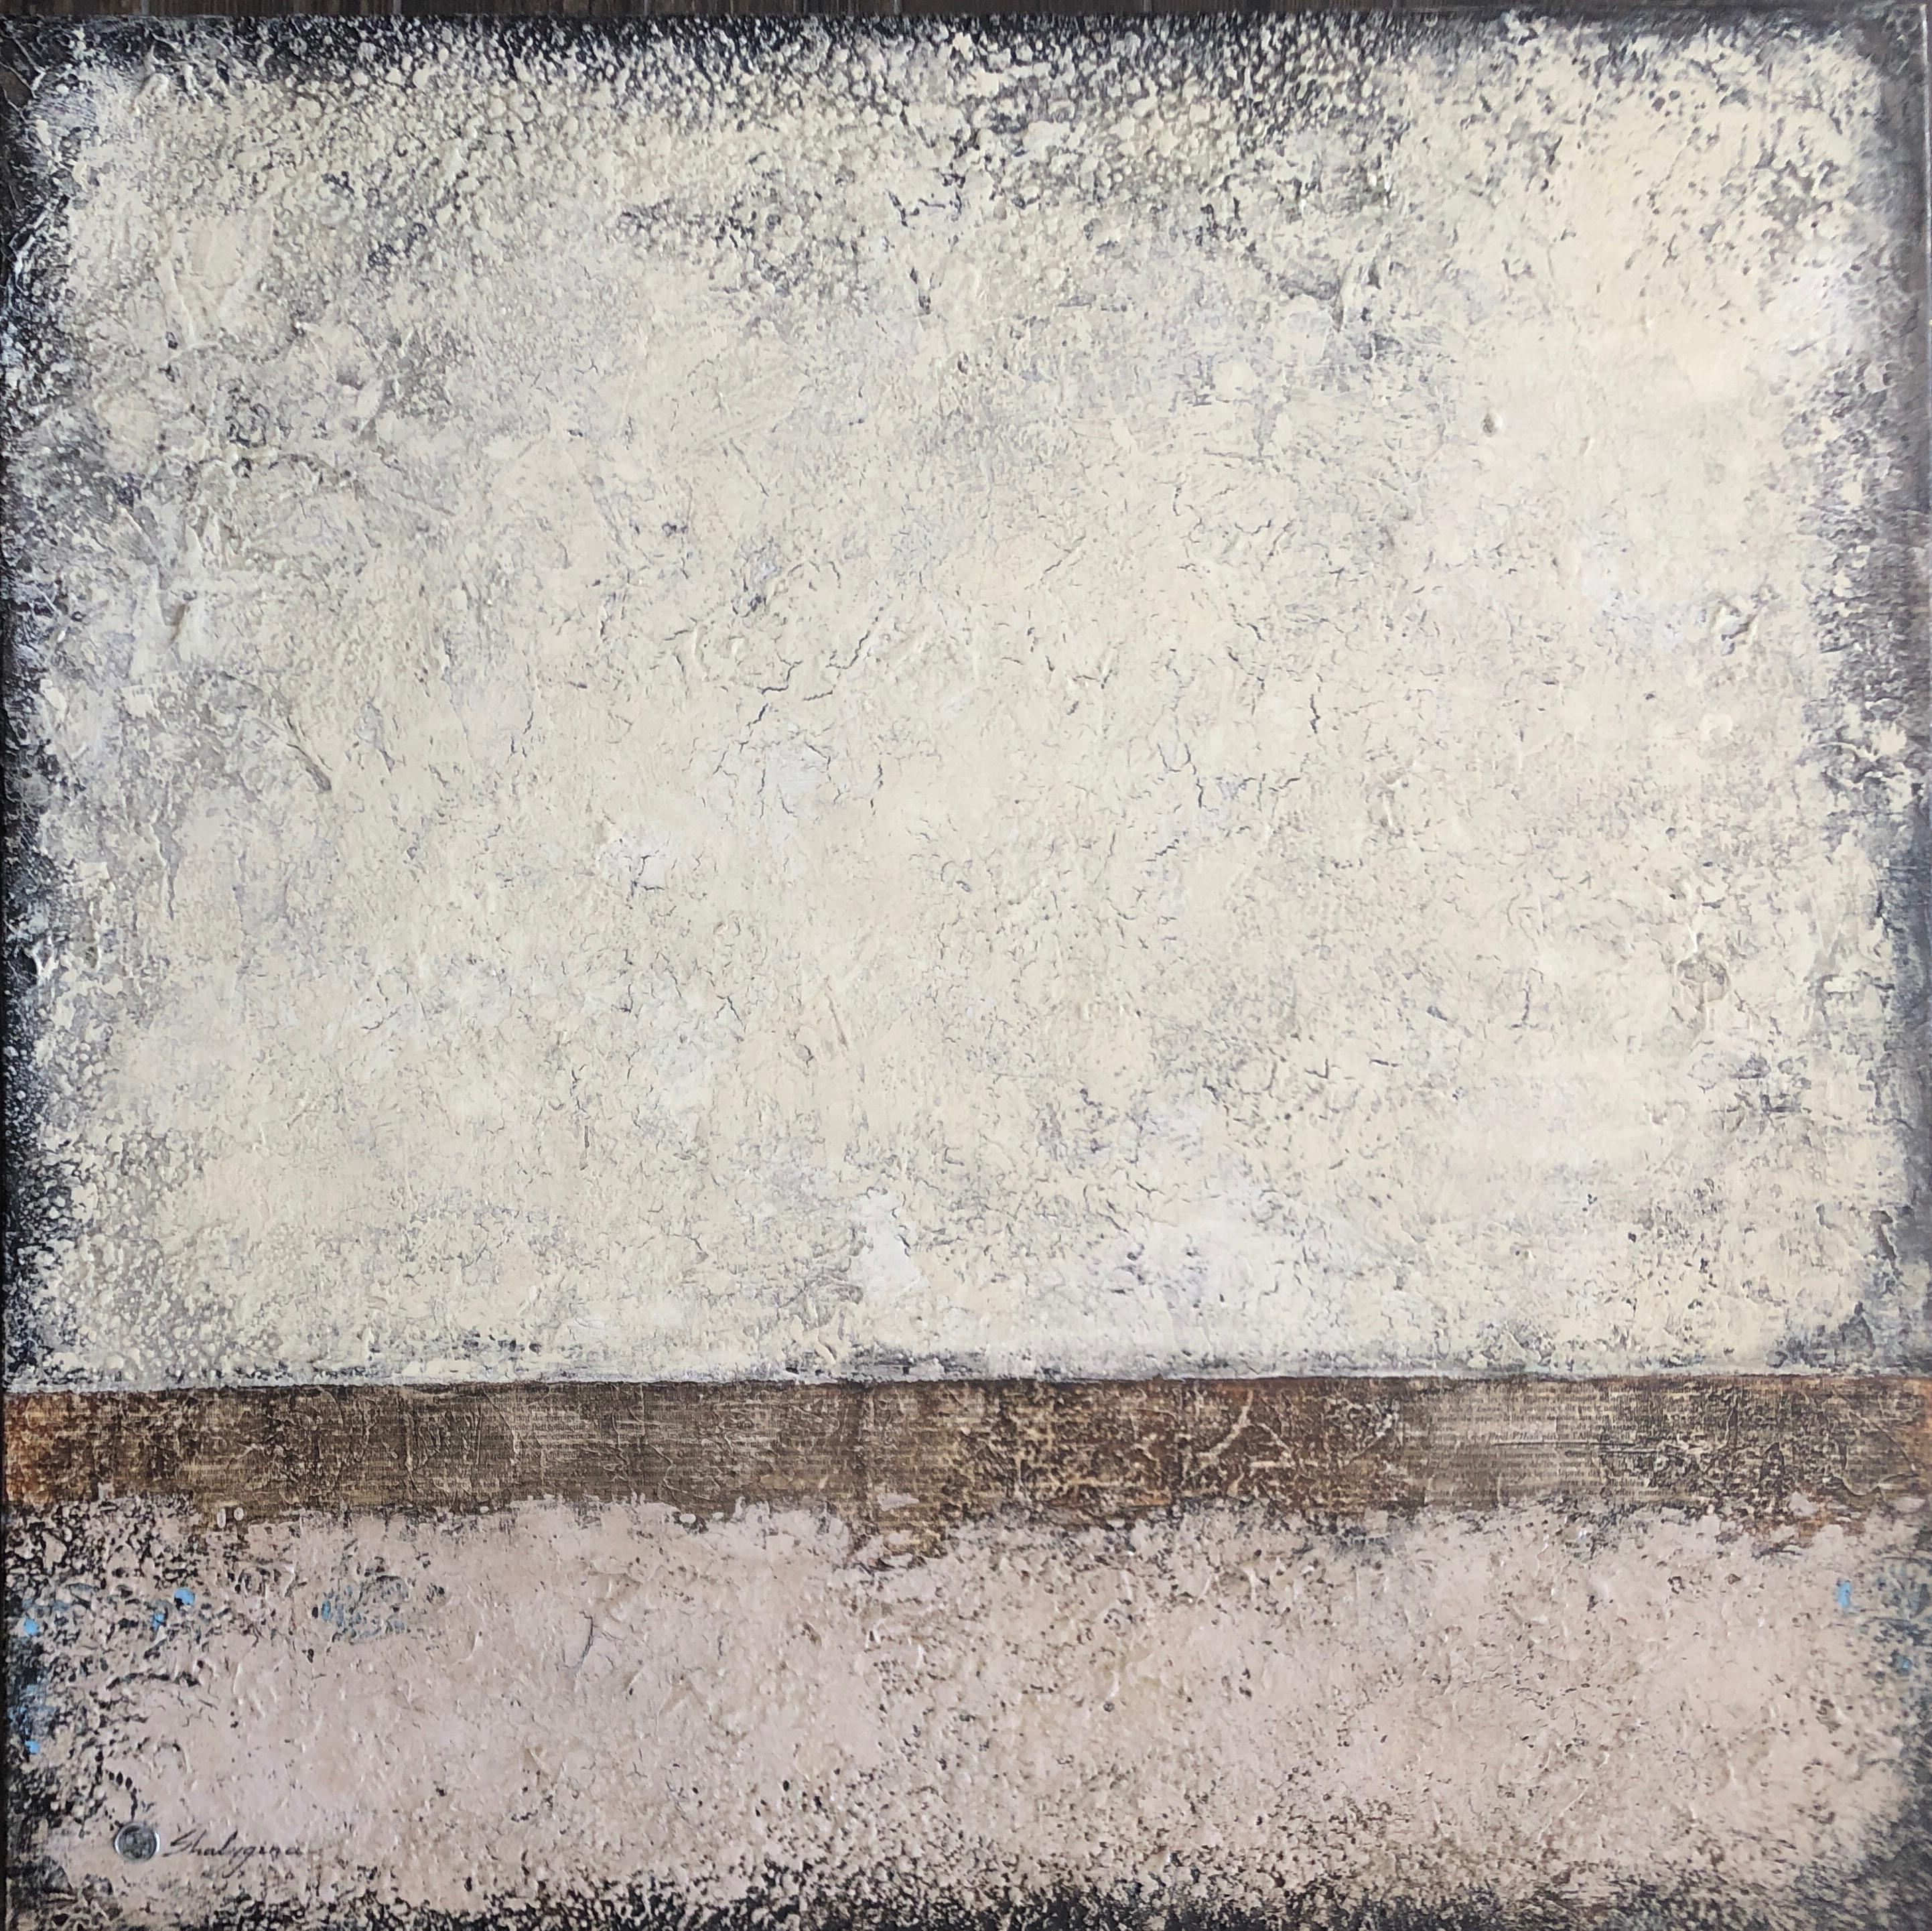 Monochrome Cream Beige Neutral Hues Large Minimalist Contemporary Abstract 40x40